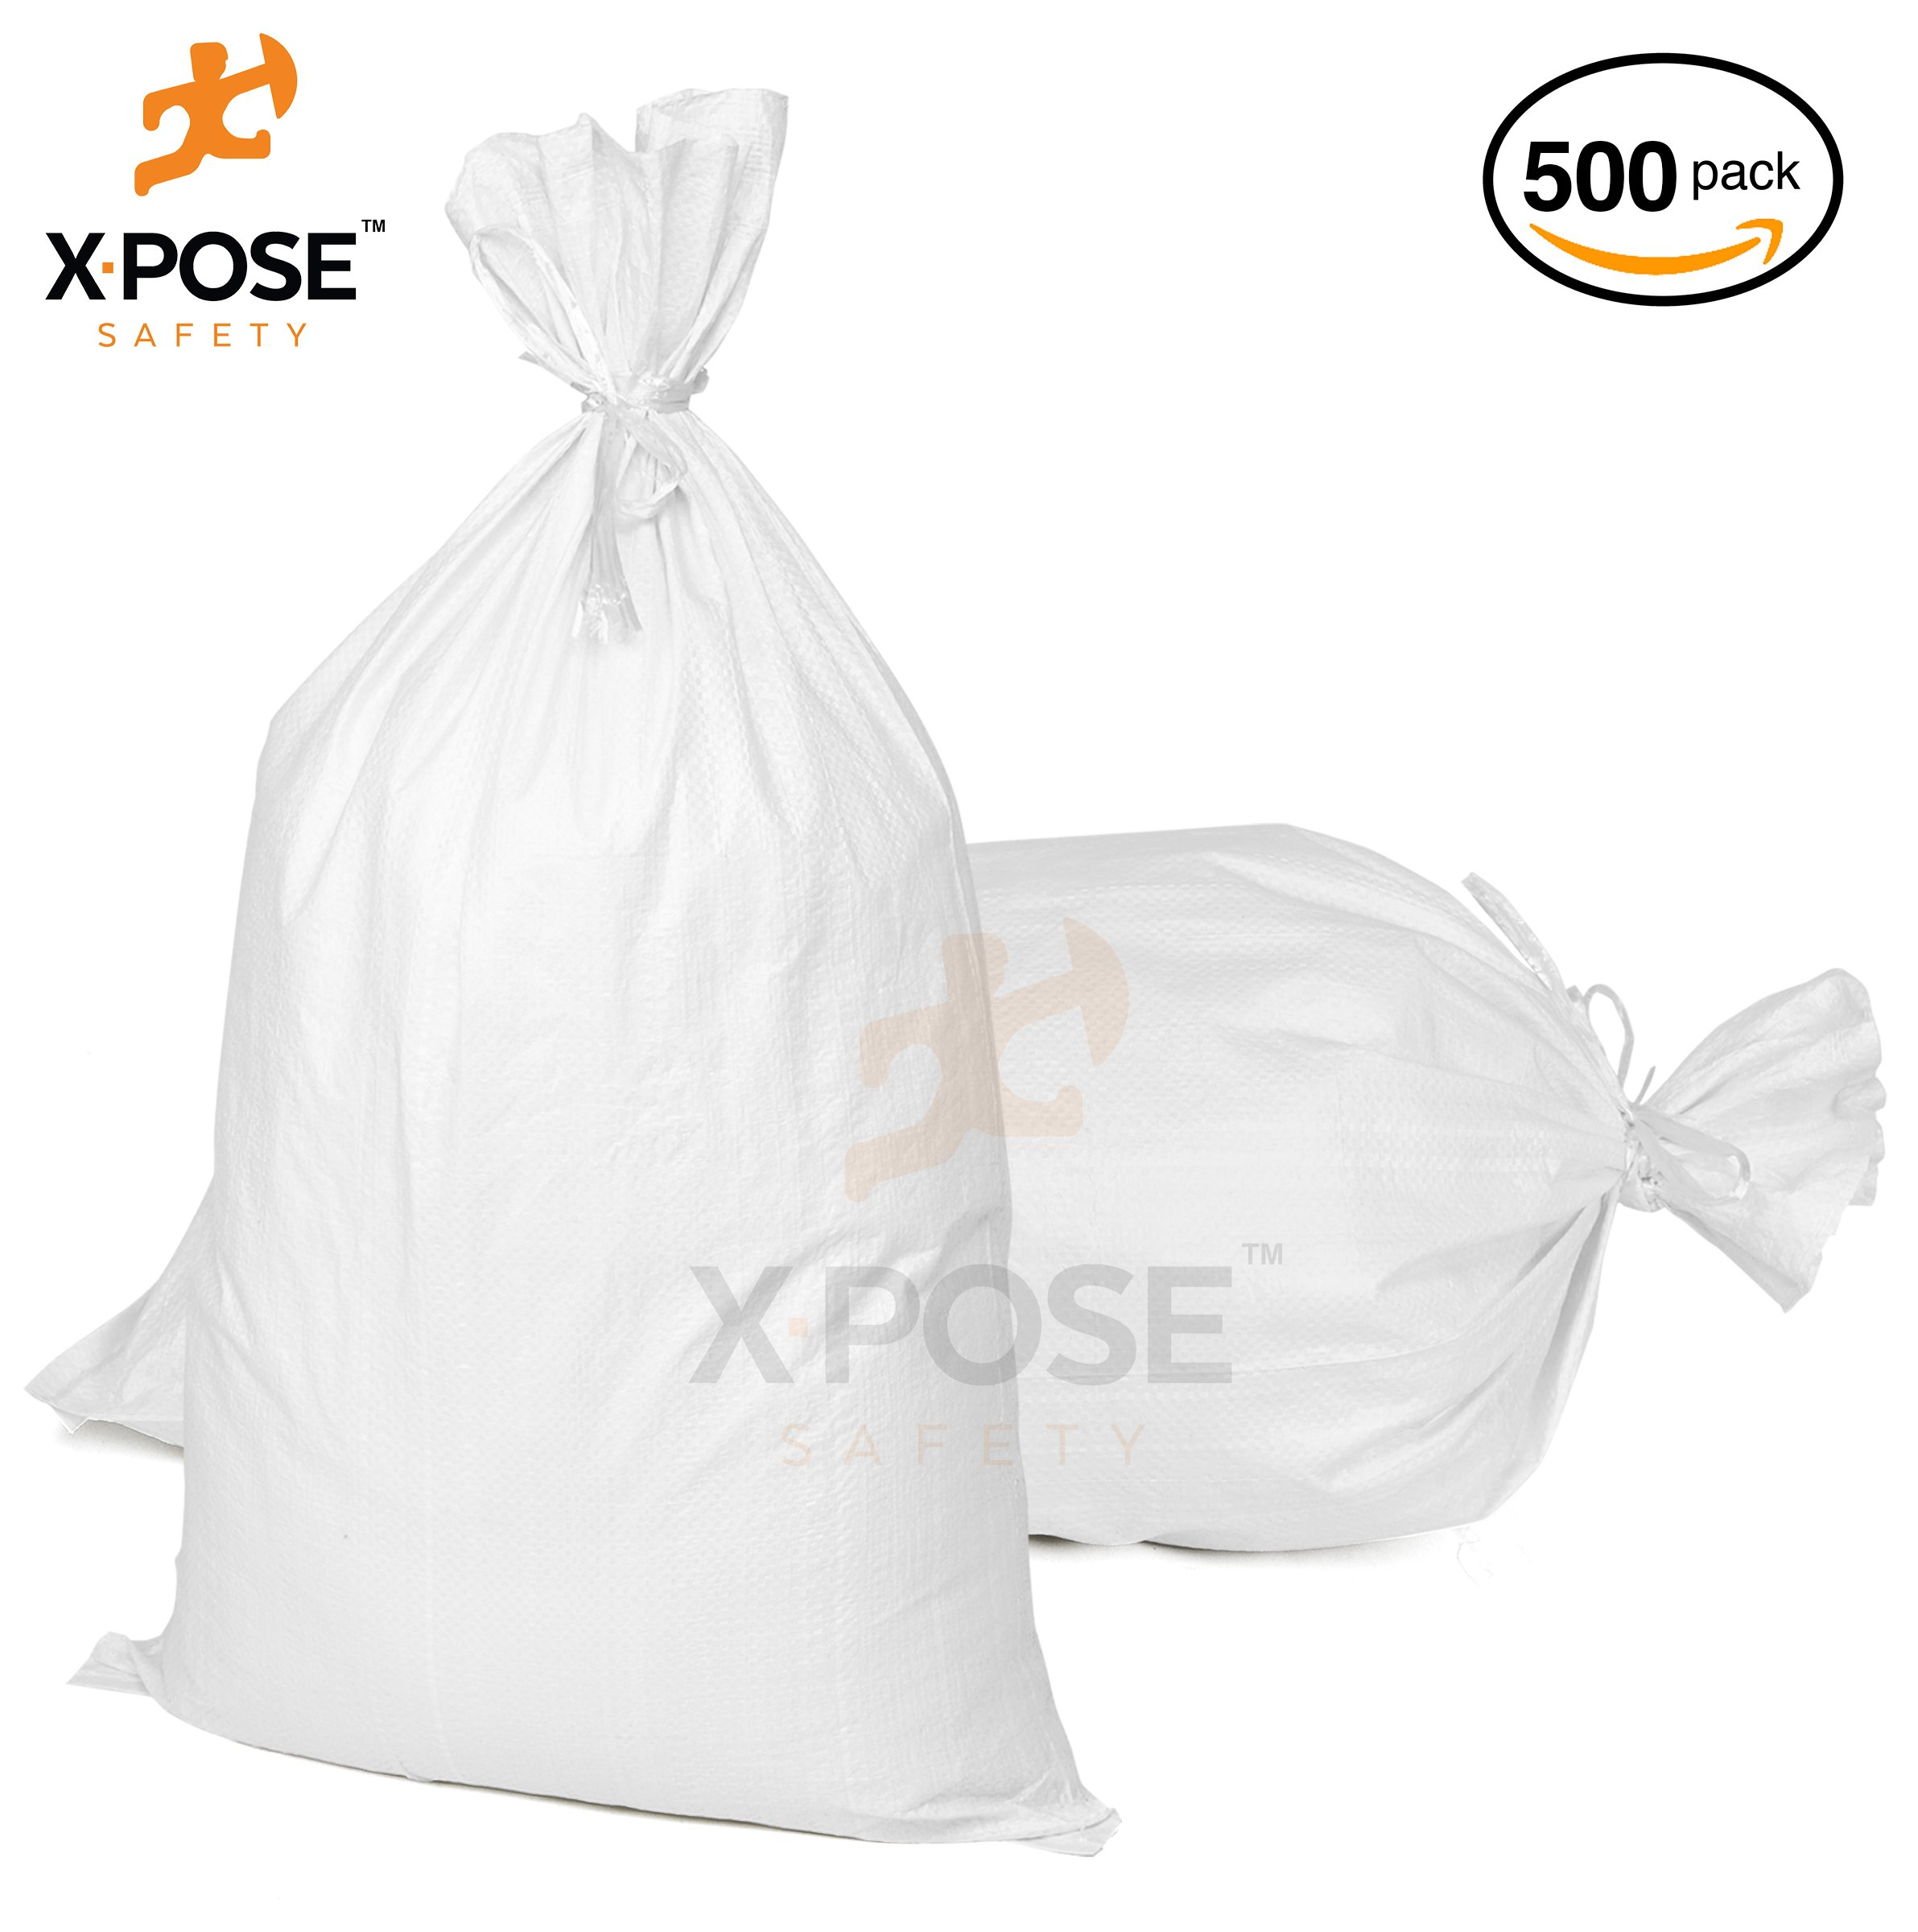 Empty Sand Bags With Ties – Heavy Duty Woven Polypropylene, UV Sun Protection, Dust, Water and Oil Resistant - Home and Industrial - Floods, Photography and More - by Xpose Safety (500, 18'' x 30'')